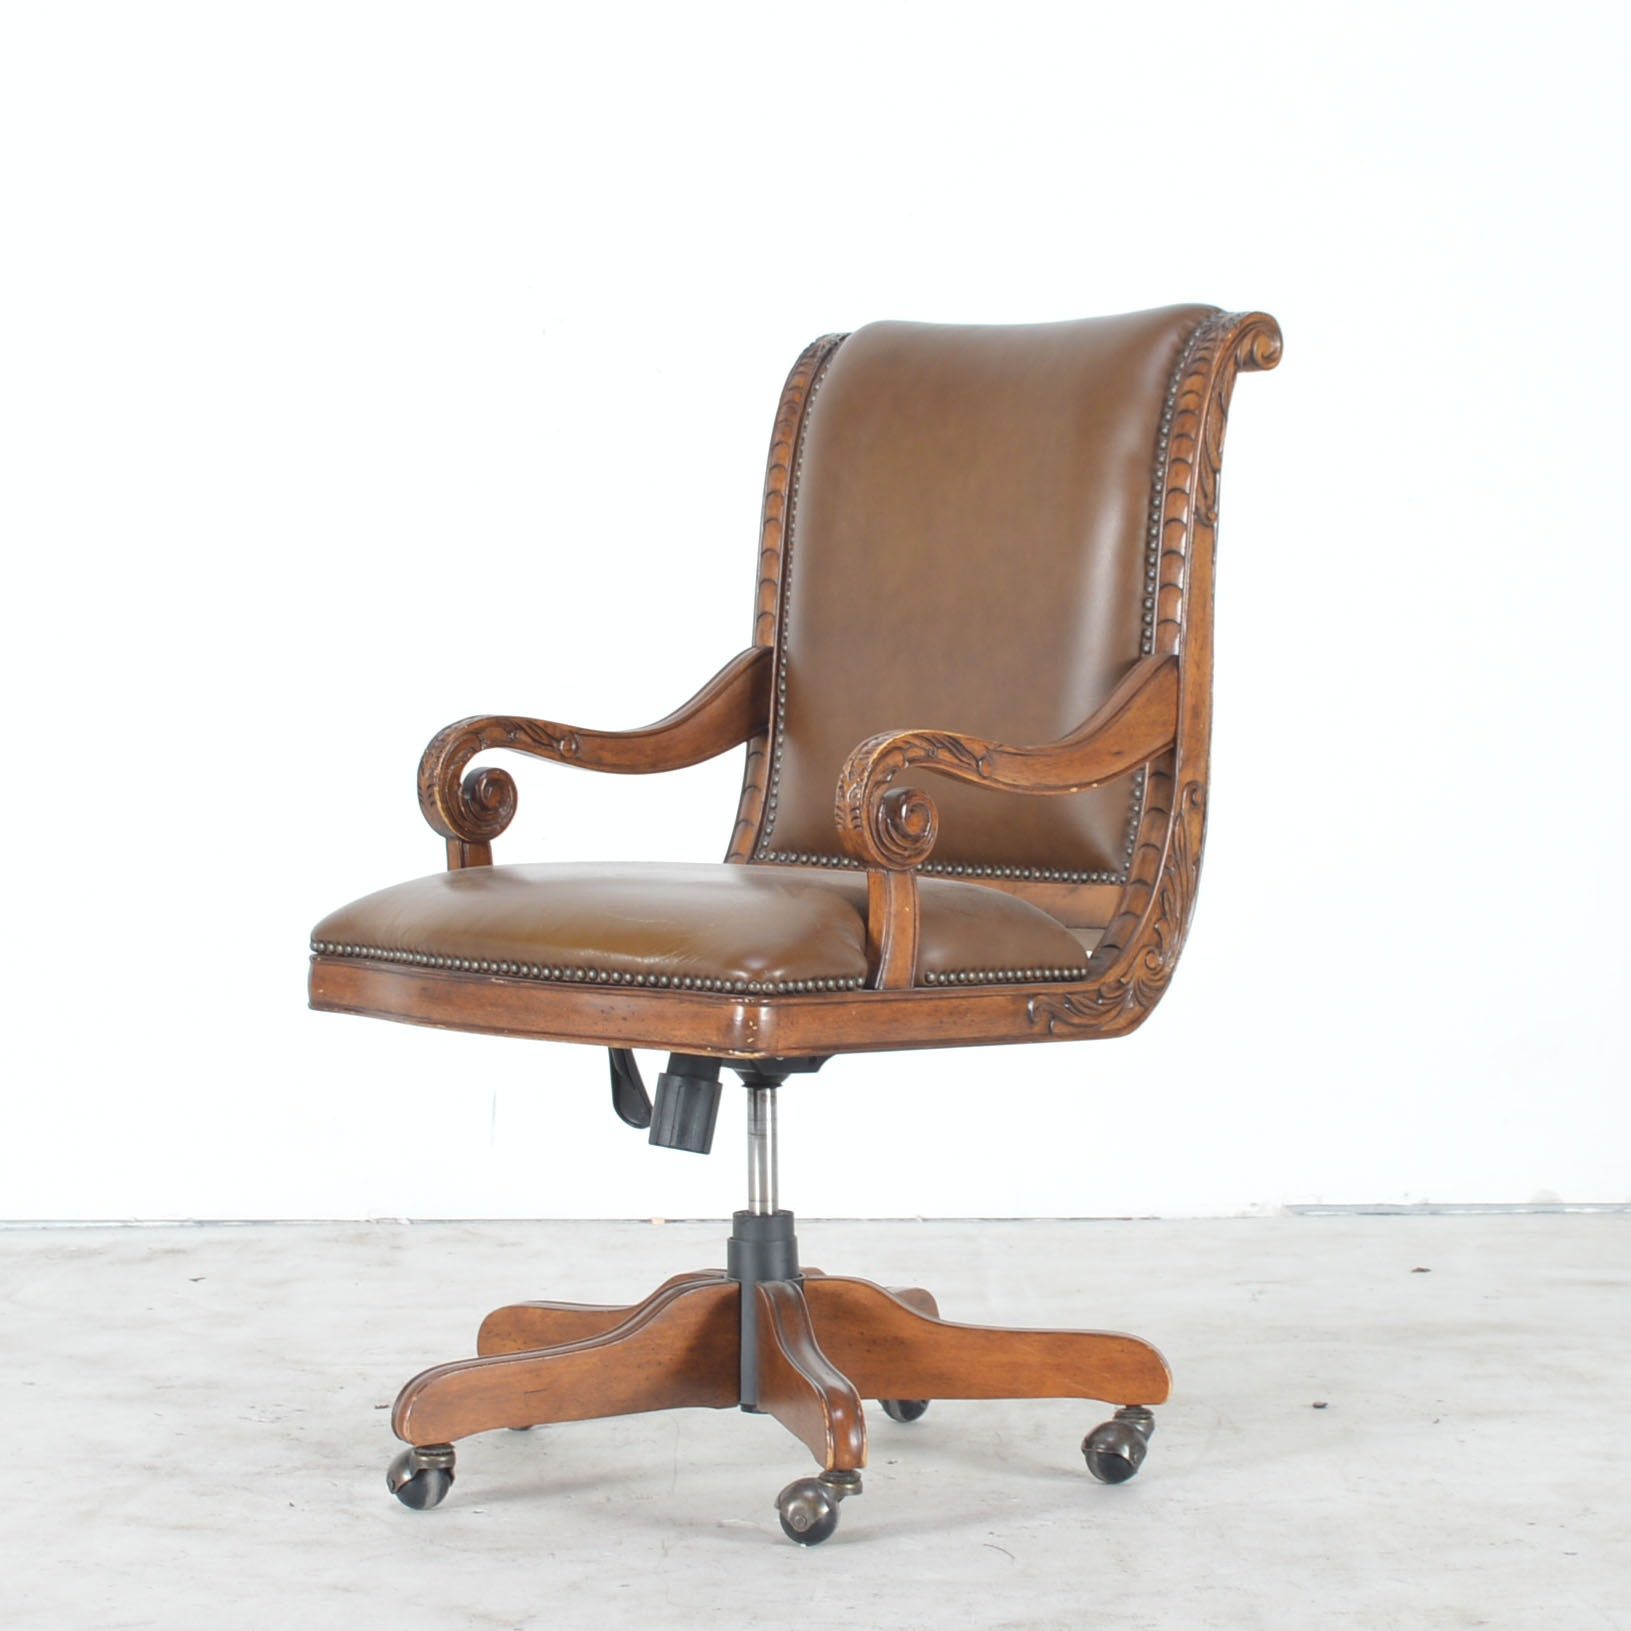 Leather and Wood Executive's Chair